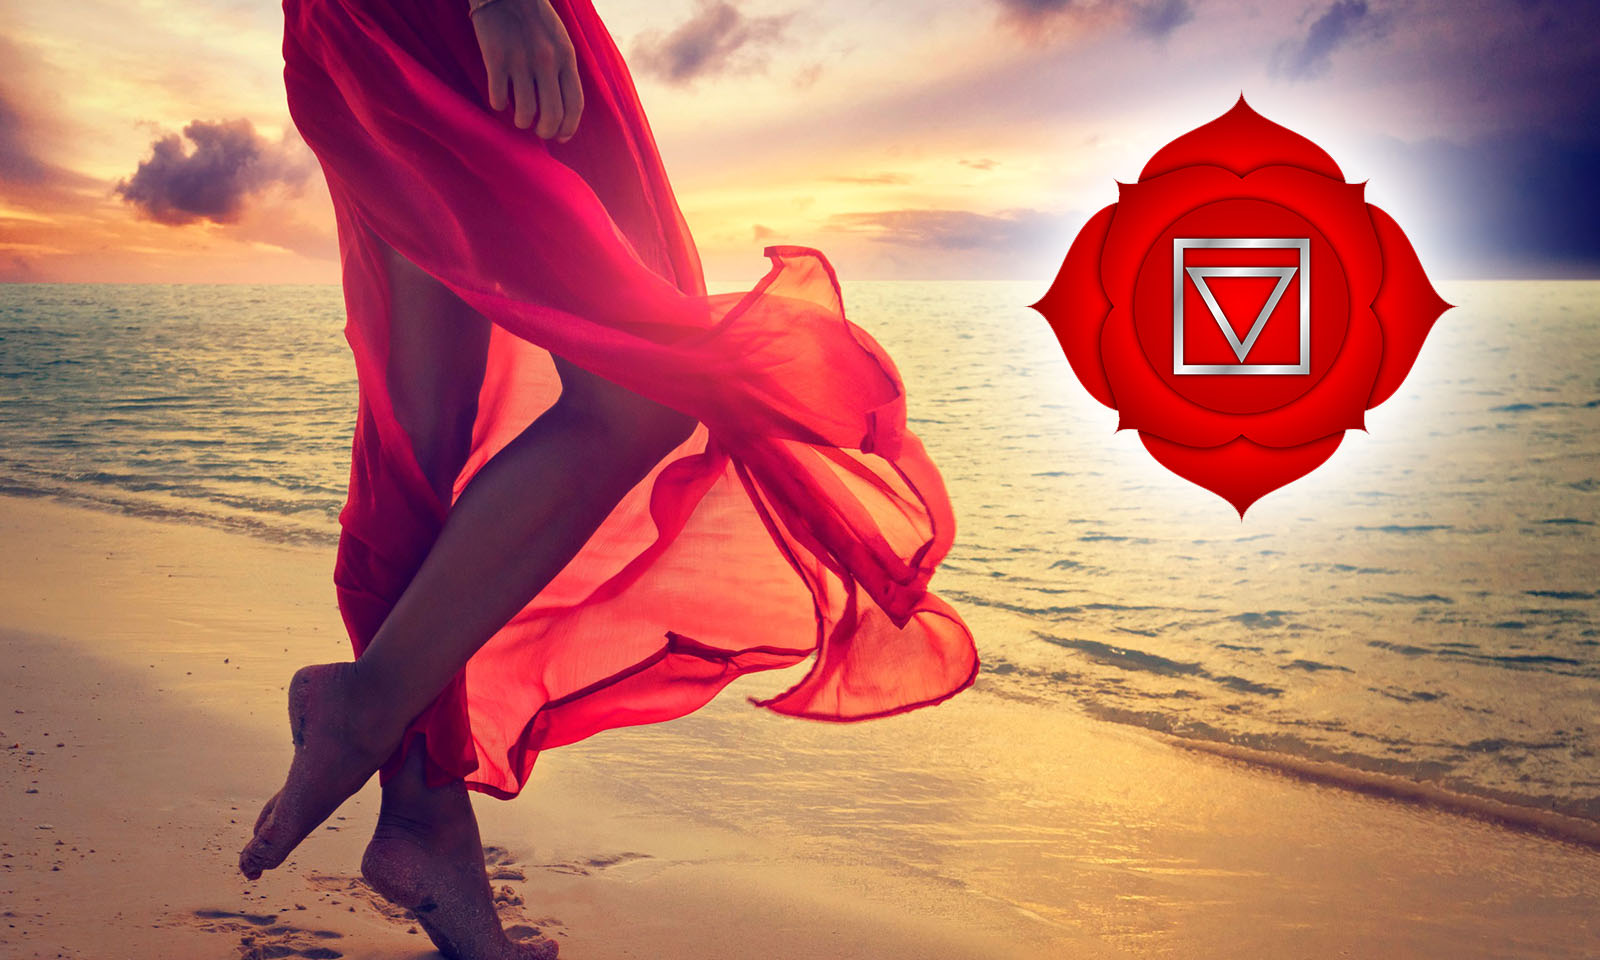 Twin Flame and the Heart Chakra